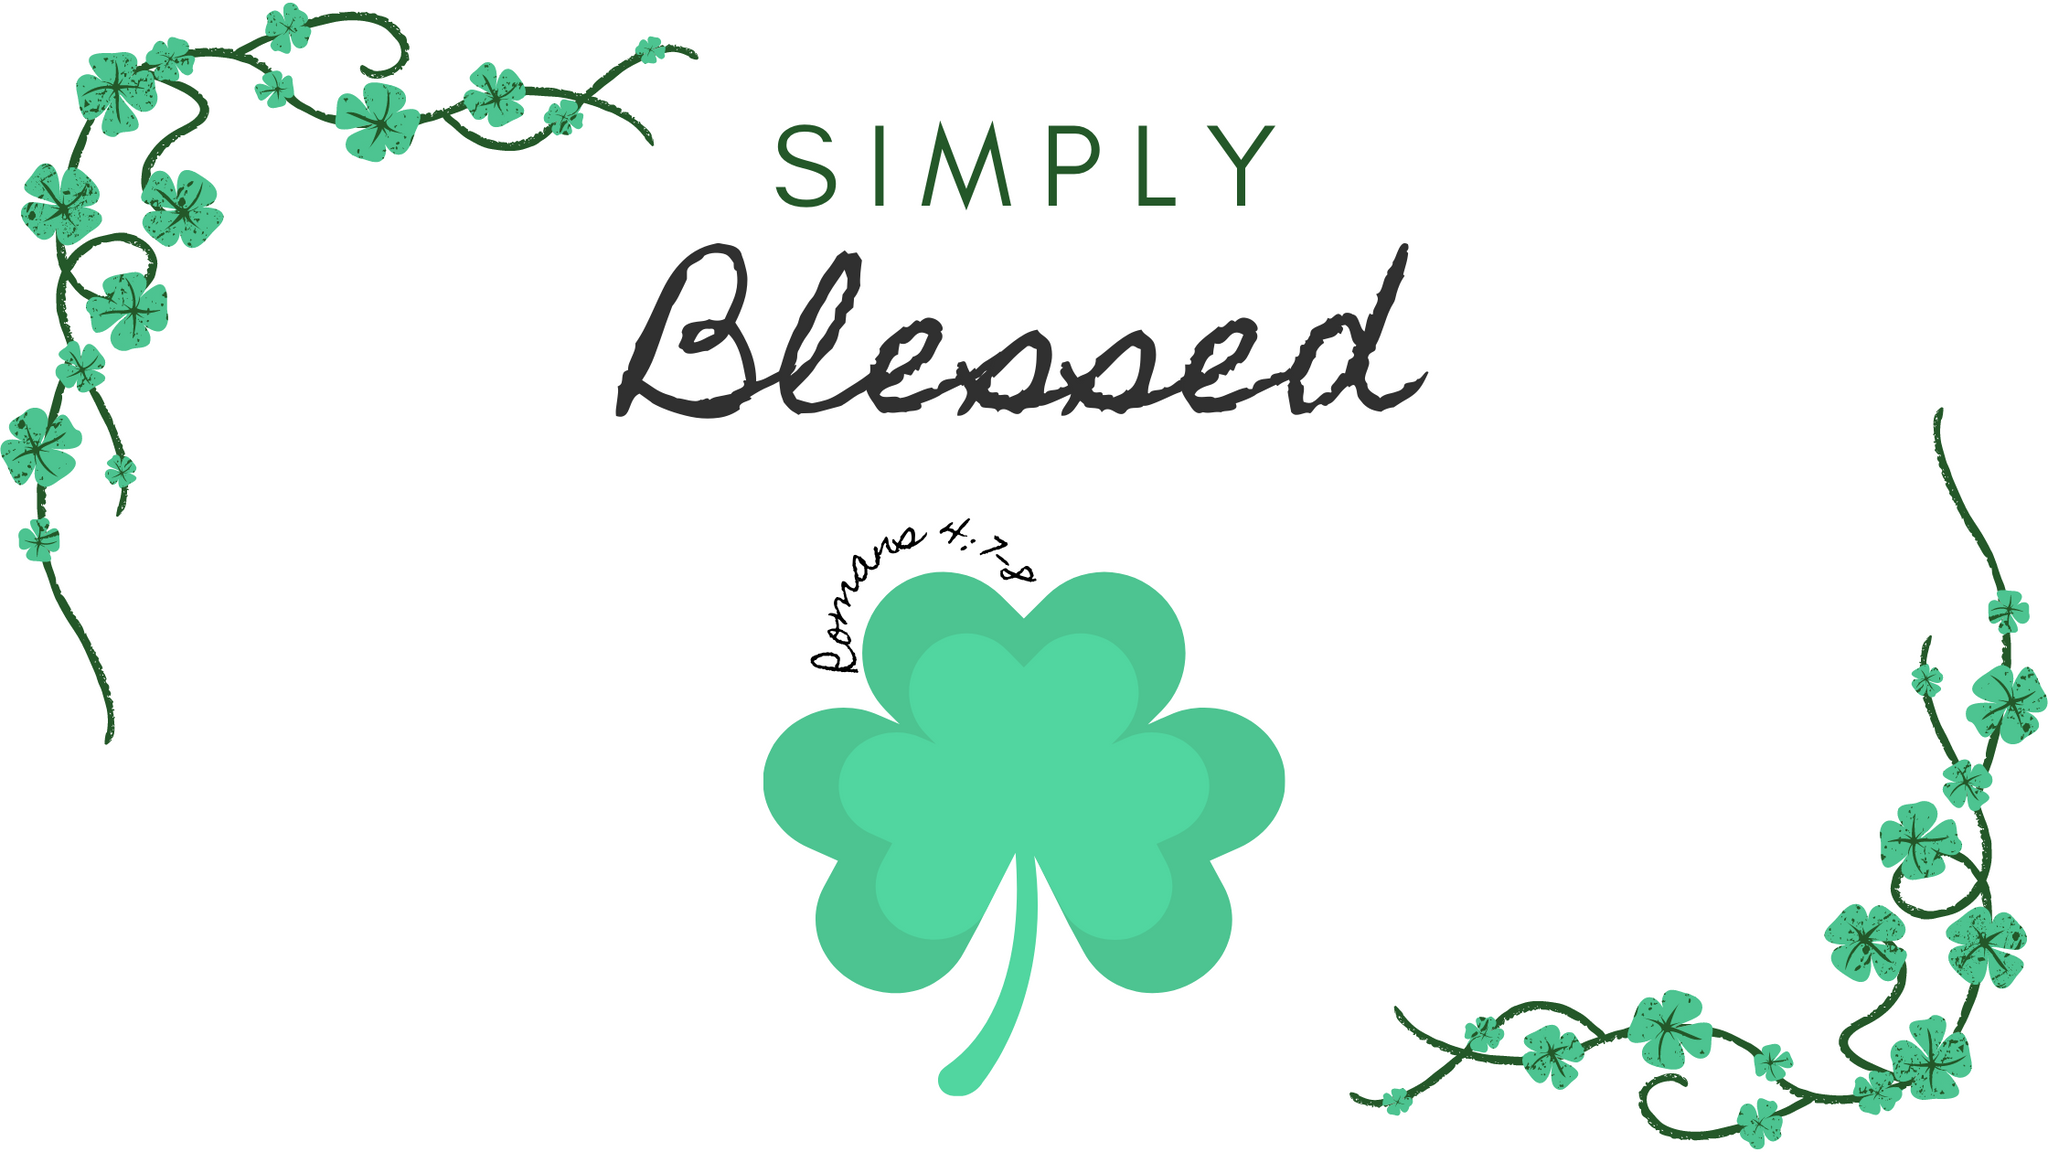 Simply Blessed - 5 Fun Ideas for St. Patrick's Day